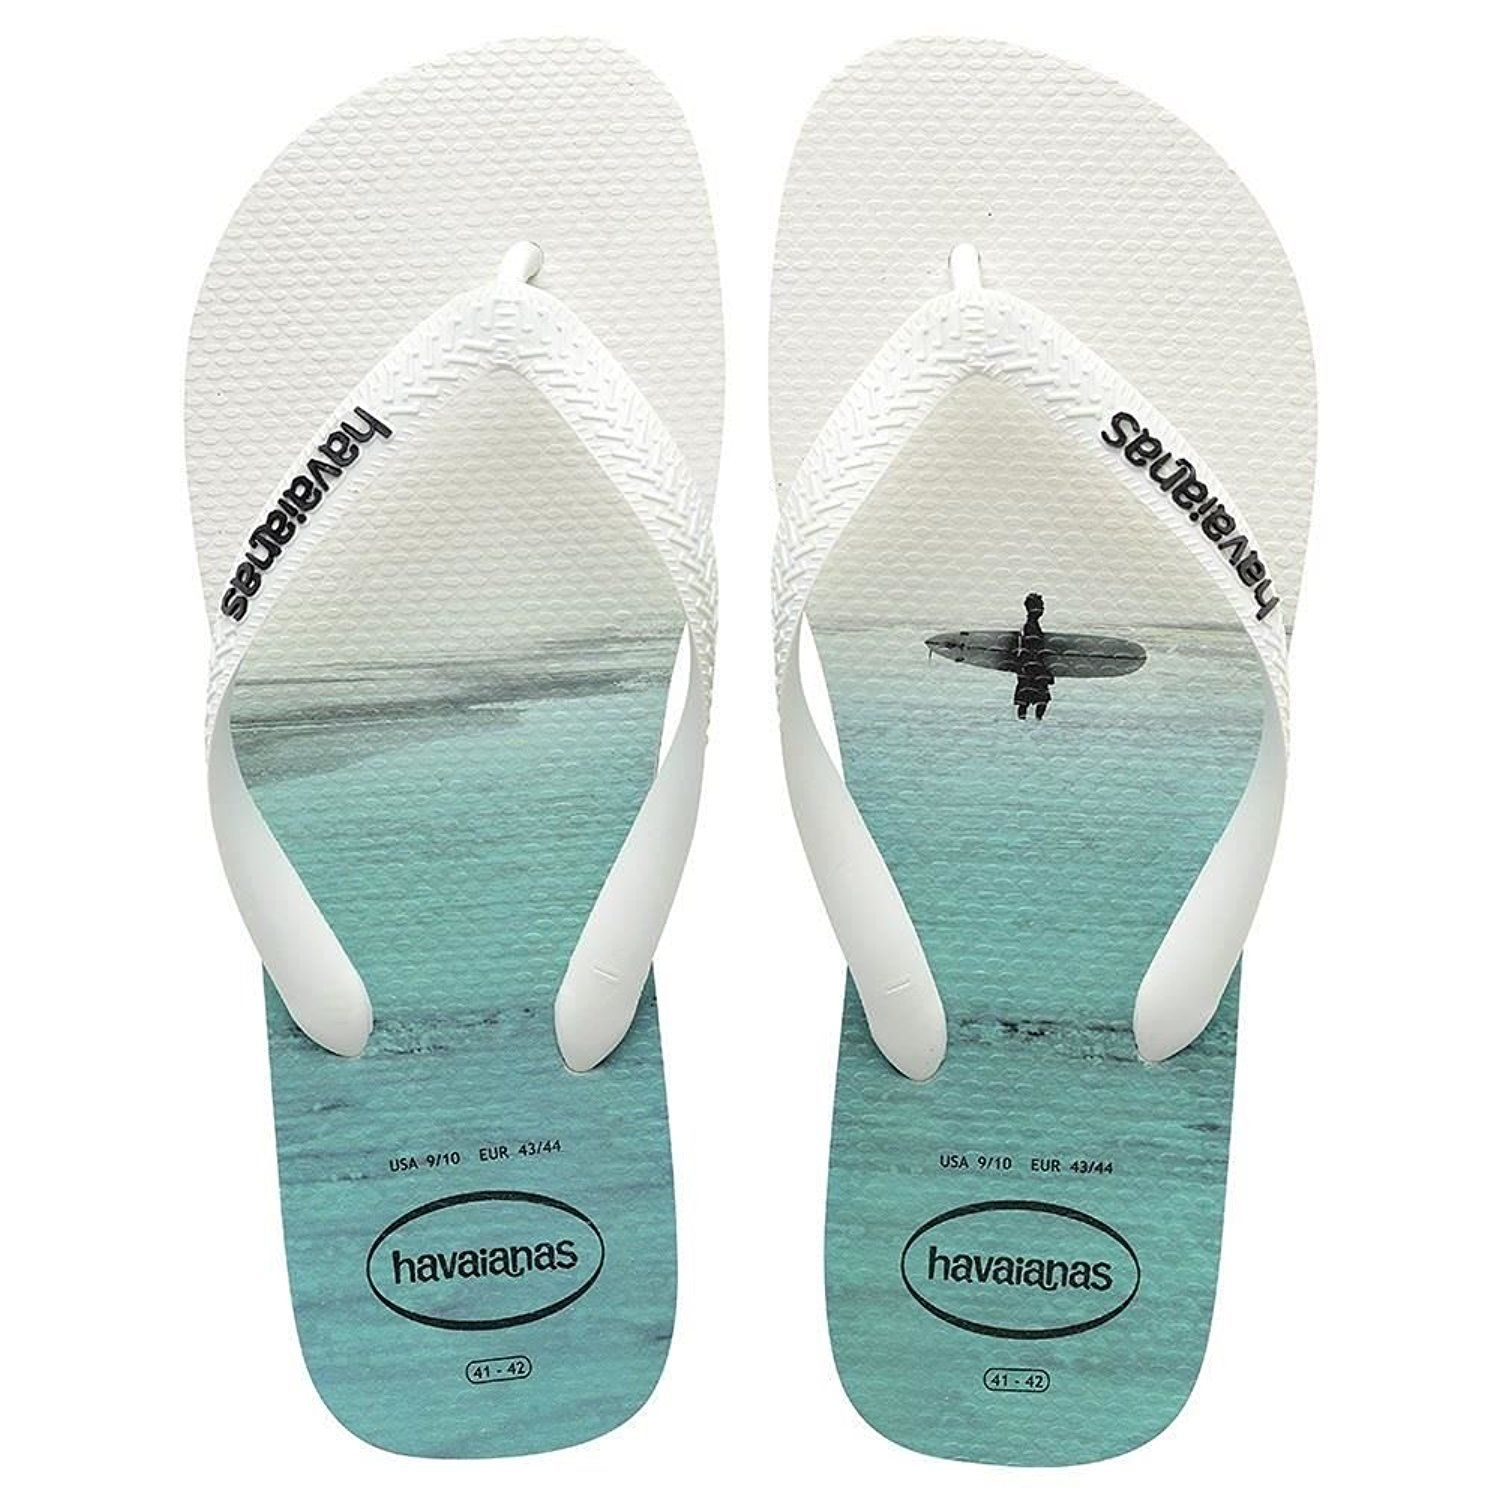 56b72c0b46e8 Havaianas Hype 2017 Photo Print White Black Grey Men s Flip Flops All Sizes  -- See this great product.